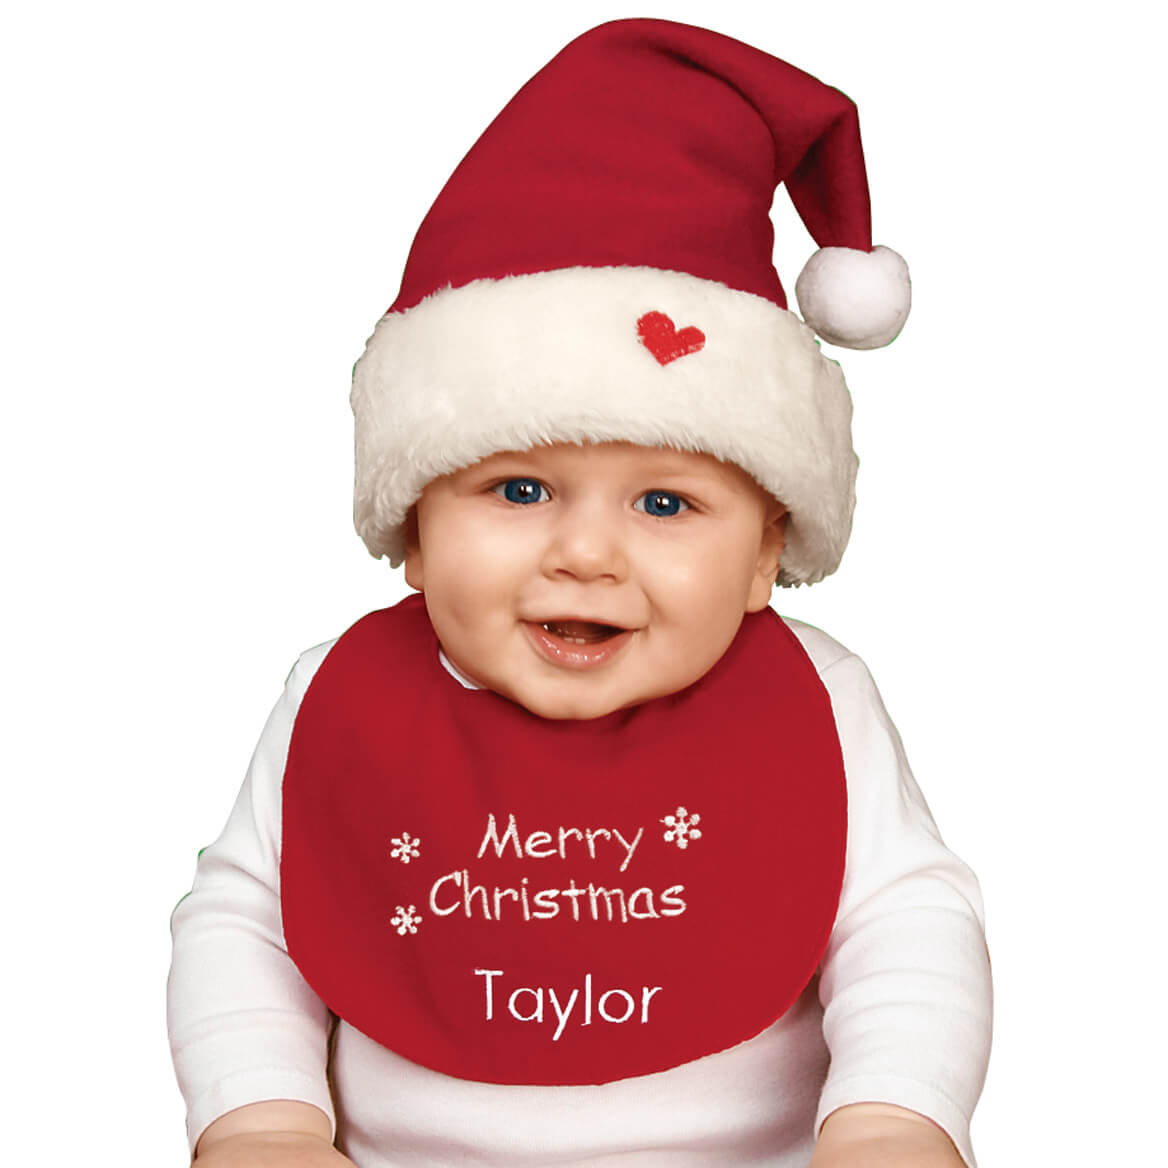 Personalized Baby Christmas Hat   Bib Set - Christmas - Miles Kimball 710011b77